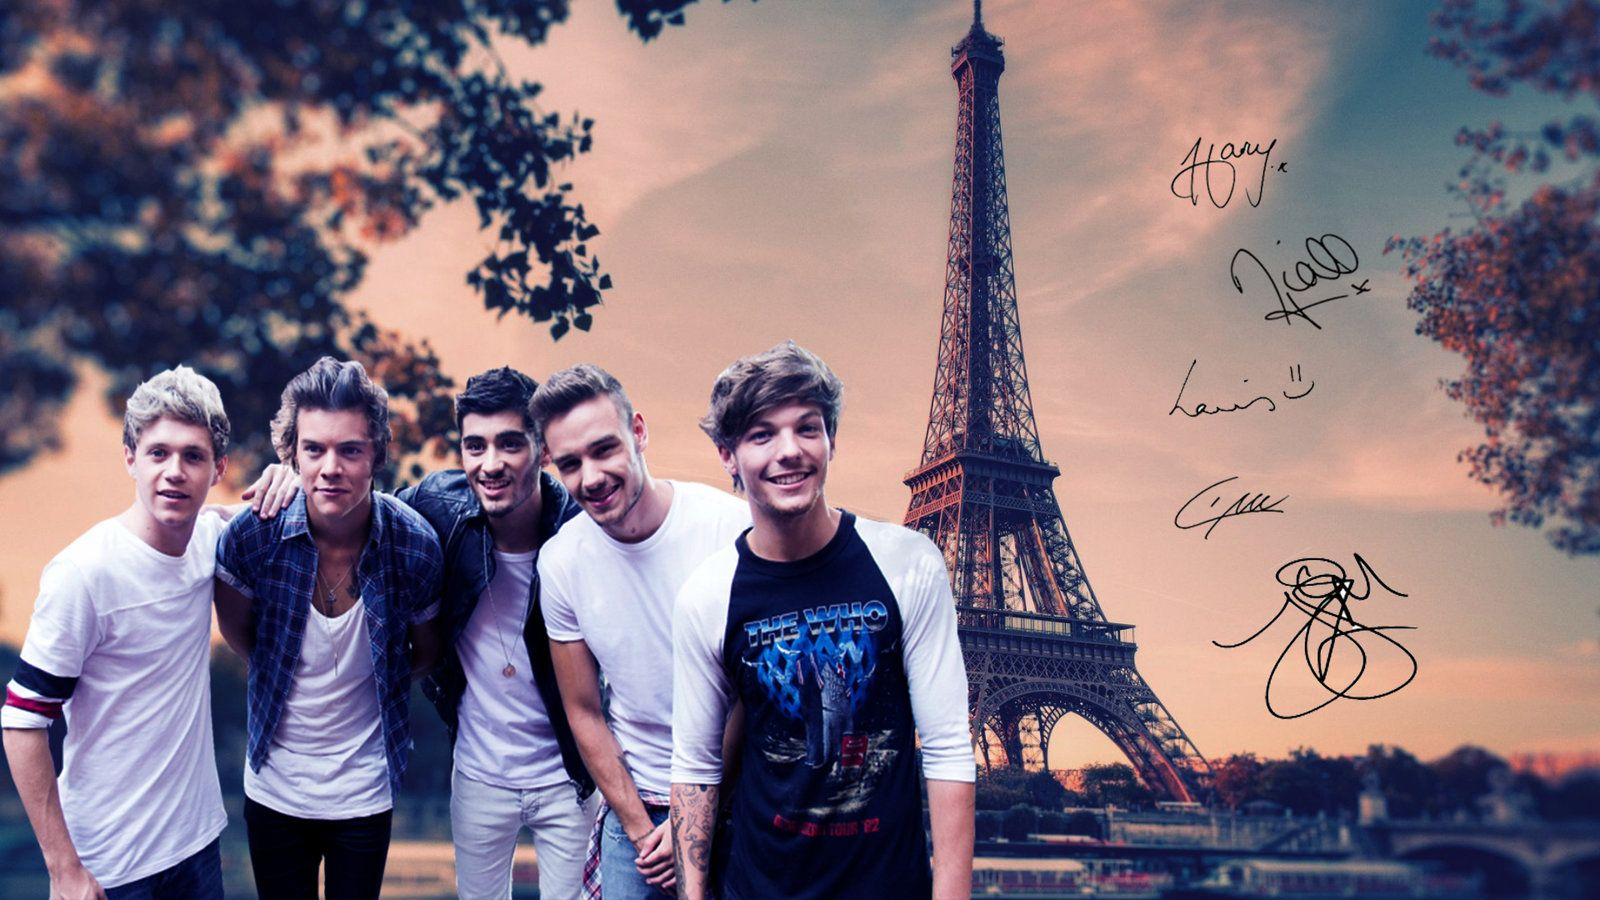 One Direction Wallpaper By Madi Milkshakes Deviantart Com On Deviantart One Direction Wallpaper One Direction Pictures One Direction